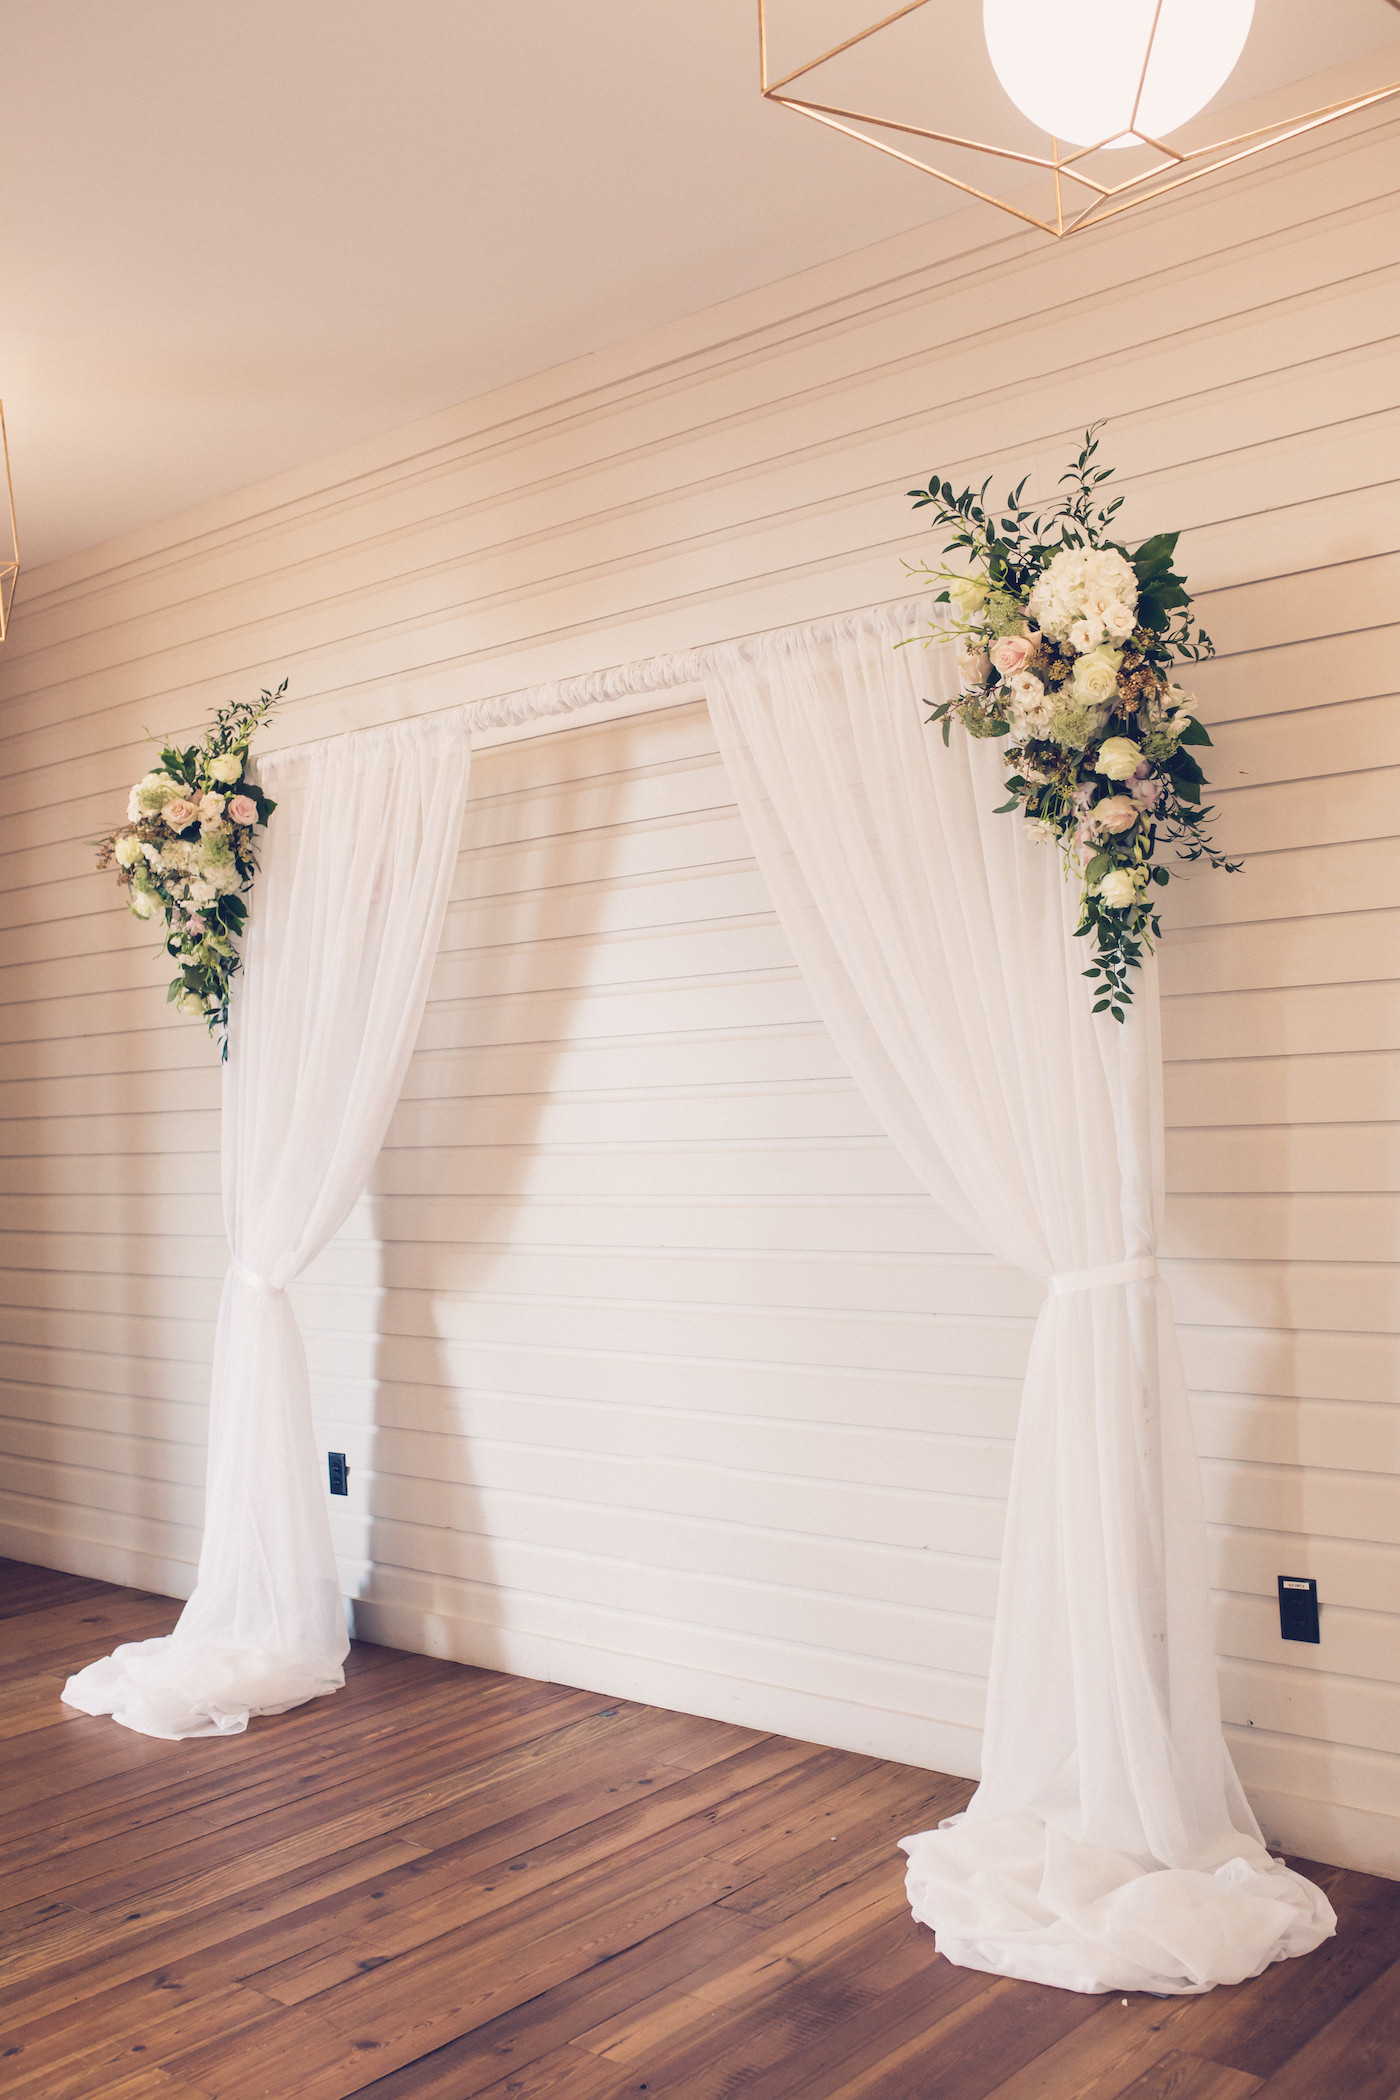 Indoor Tampa Wedding Ceremony With Pipe And Drape Fabric Arch Backdrop With Greenery And White Flower Arrangements Marry Me Tampa Bay Local Real Wedding Inspiration Vendor Recommendation Reviews